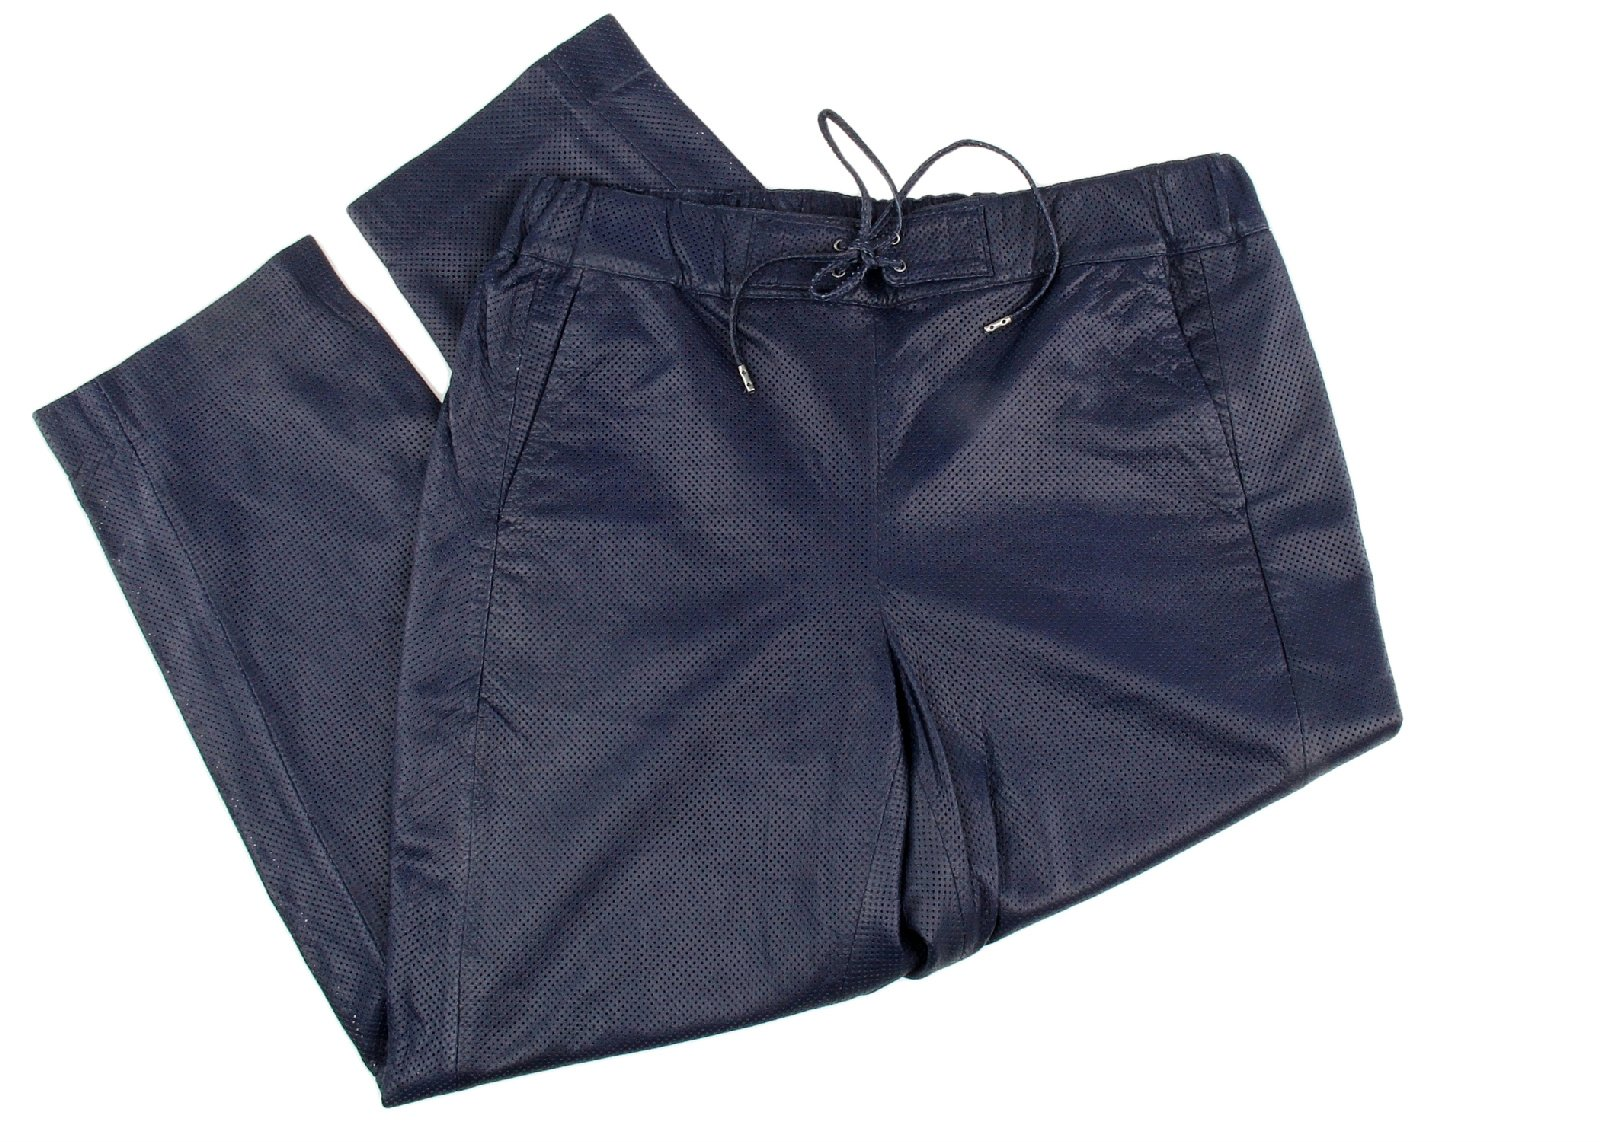 J Crew Collection Pull on Pant in Perforated Leather Size 4 Style E1672